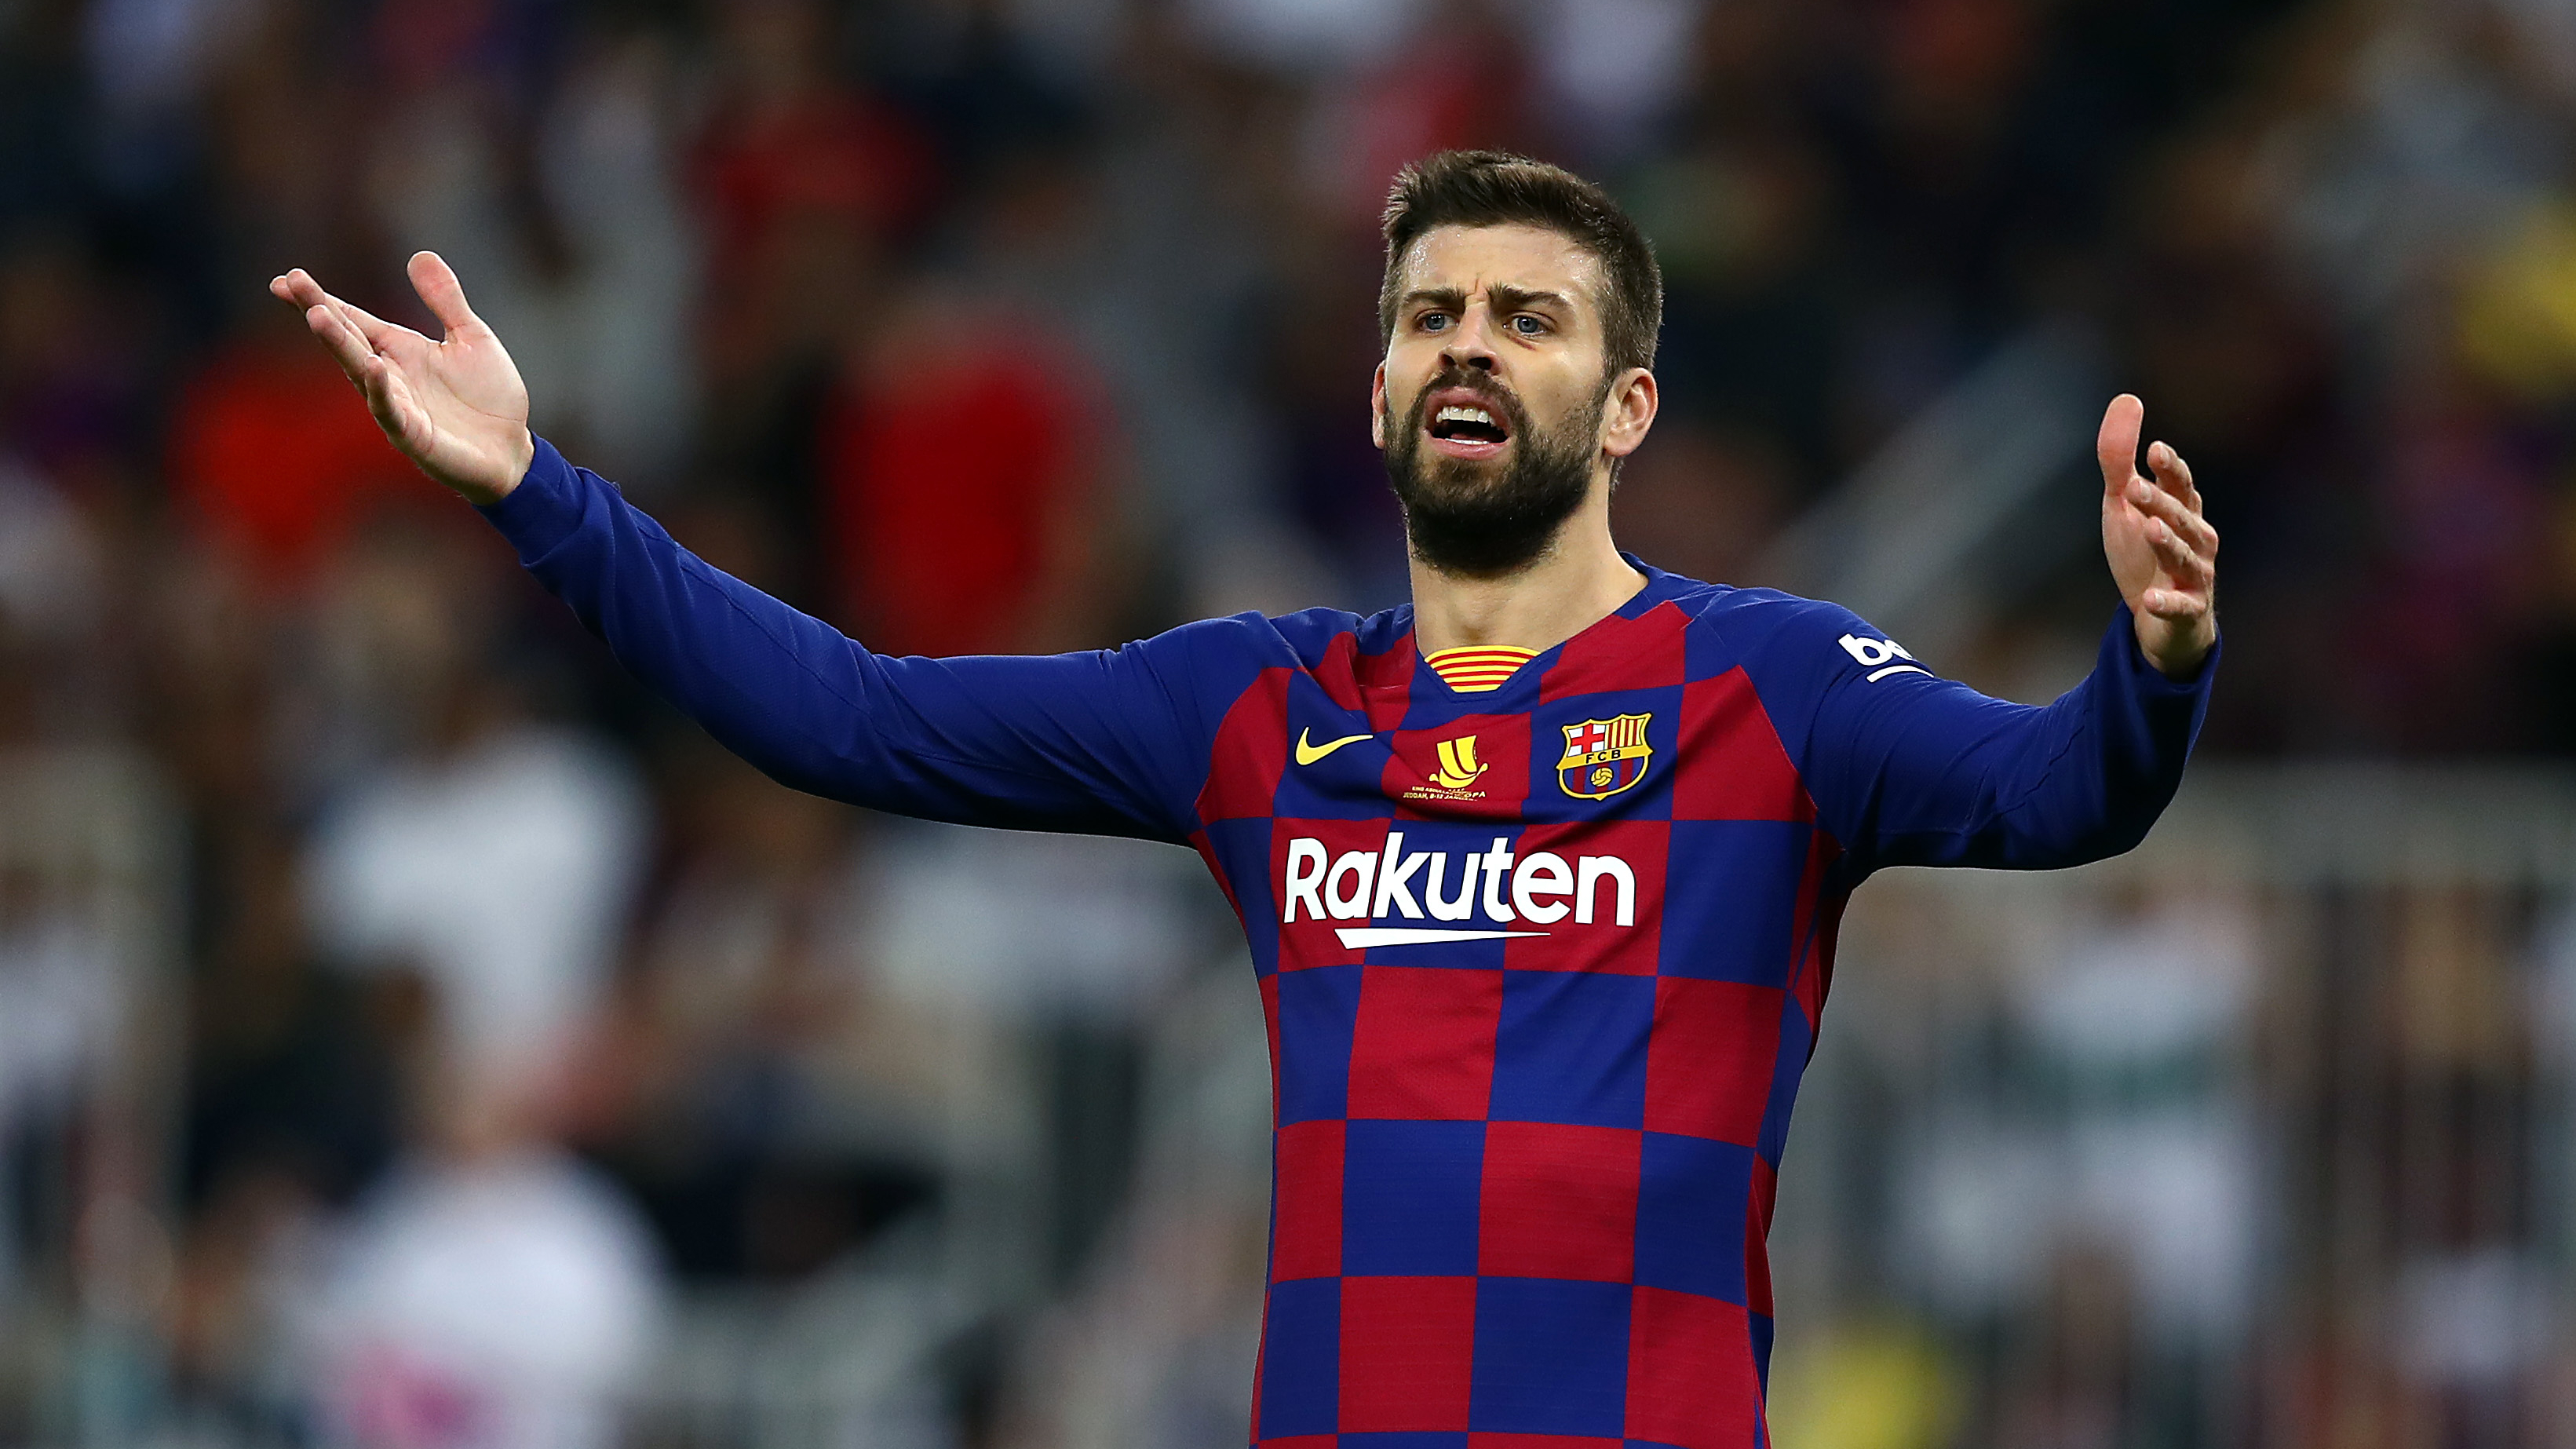 When the club is weak, these things come up' - Pique defends ...